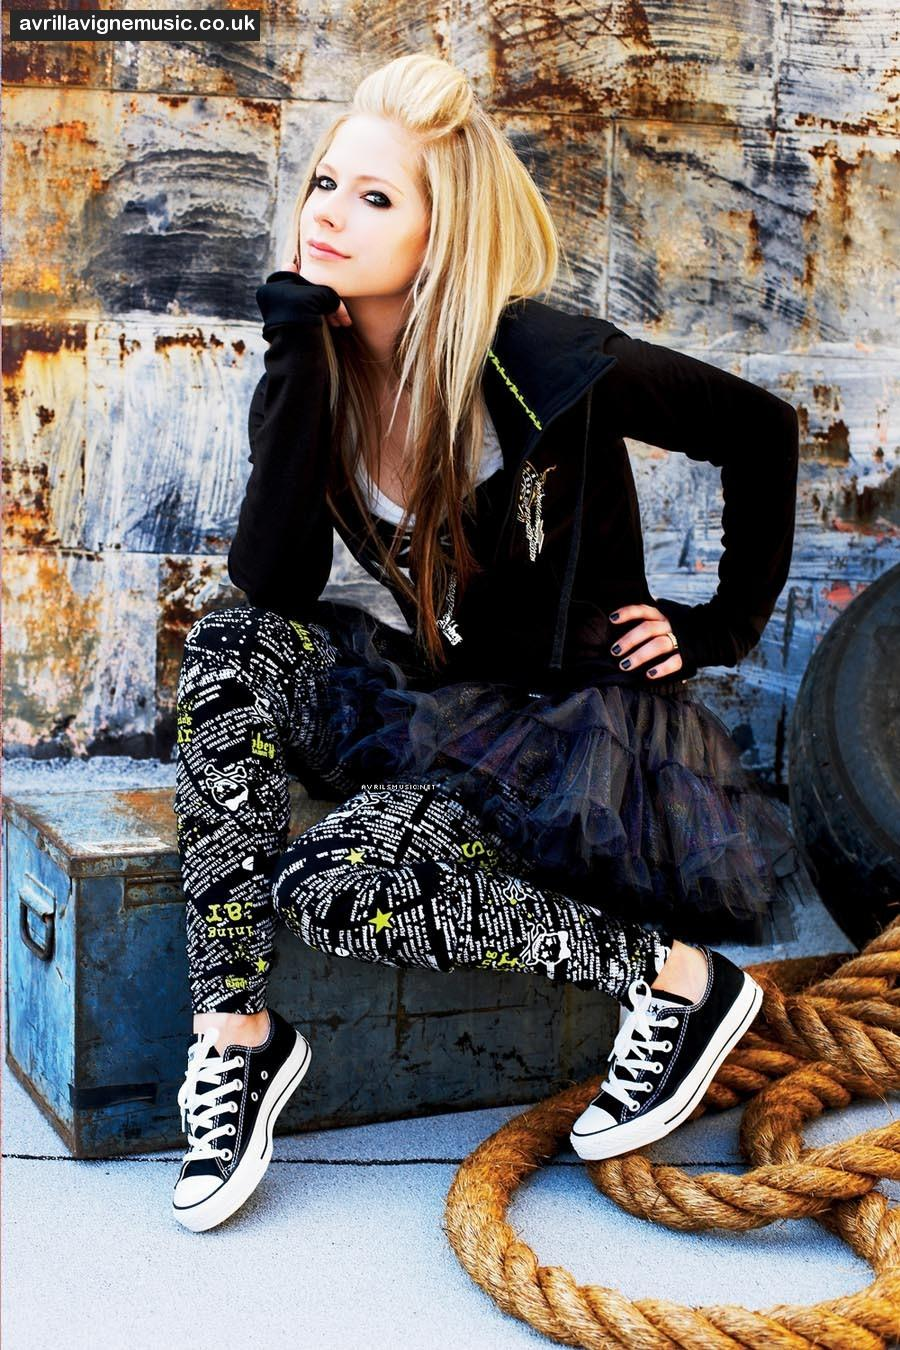 Avril Lavigne Clothes Avril Lavigne Clothes Avril Lavigne Clothes